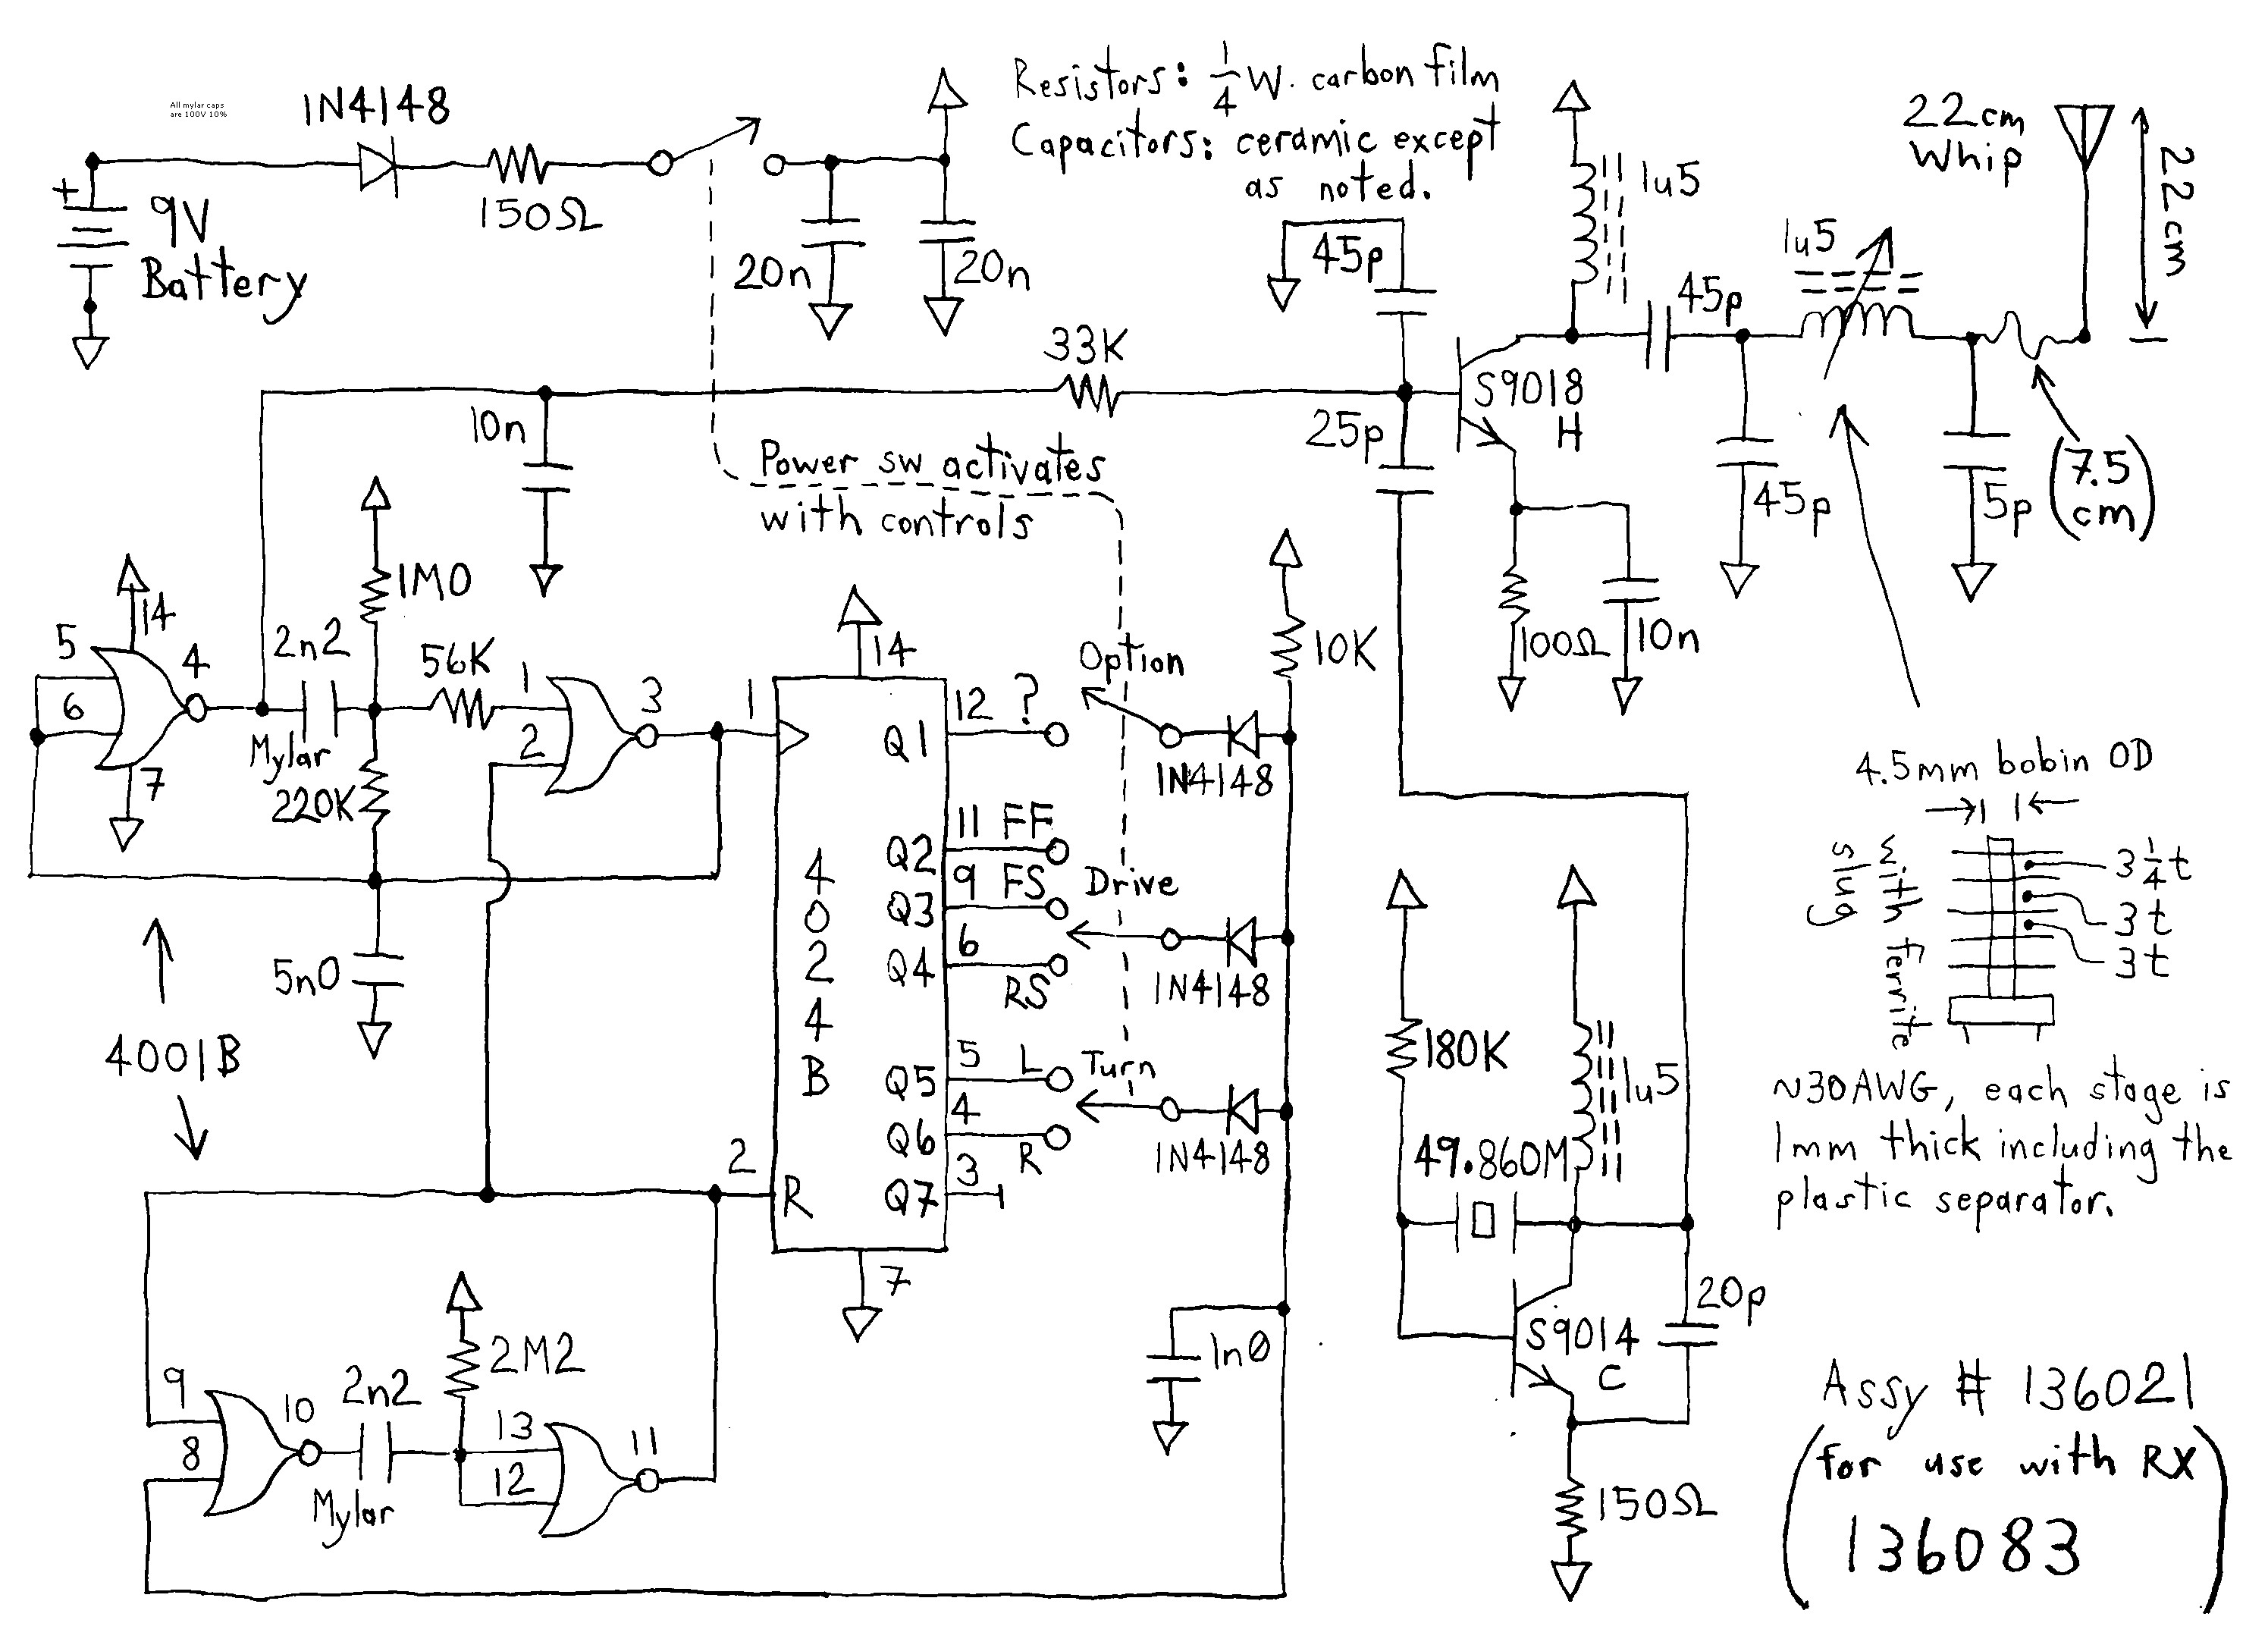 Rc car receiver wiring diagram car diagram remotetoycarassembly make rc car receiver wiring diagram electronic circuits page next gr rc cars cmos electrical diagram of asfbconference2016 Choice Image